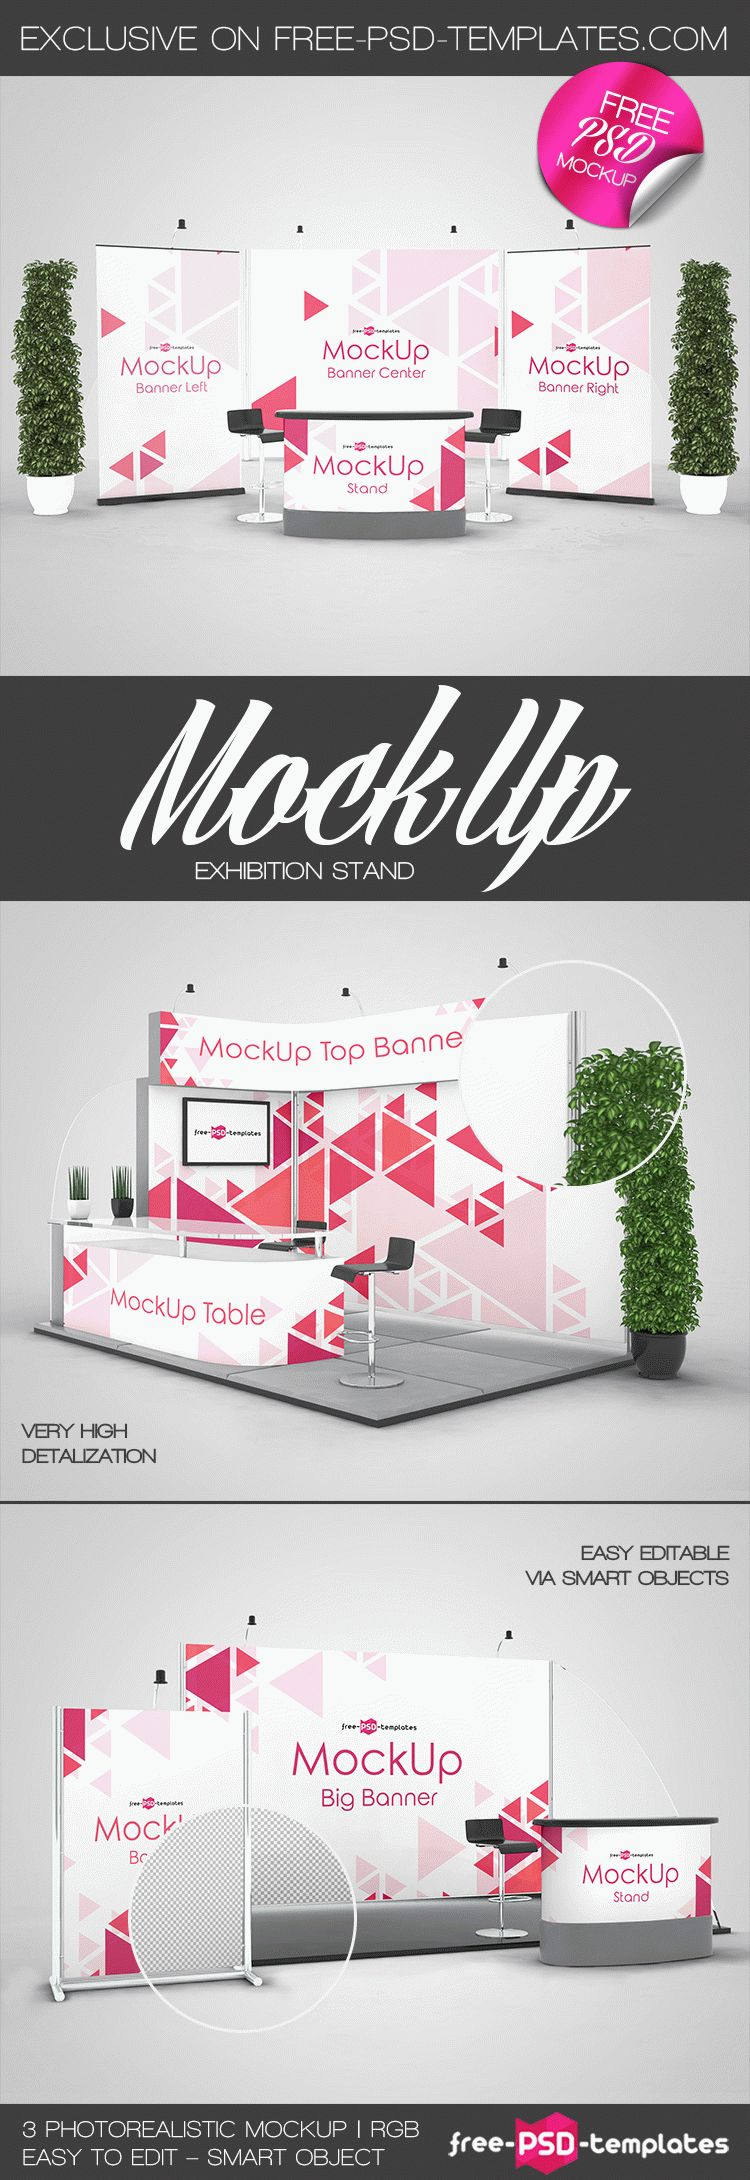 Download Free Mock Up Exhibition Stand : Free exhibition stand mock ups in psd templates